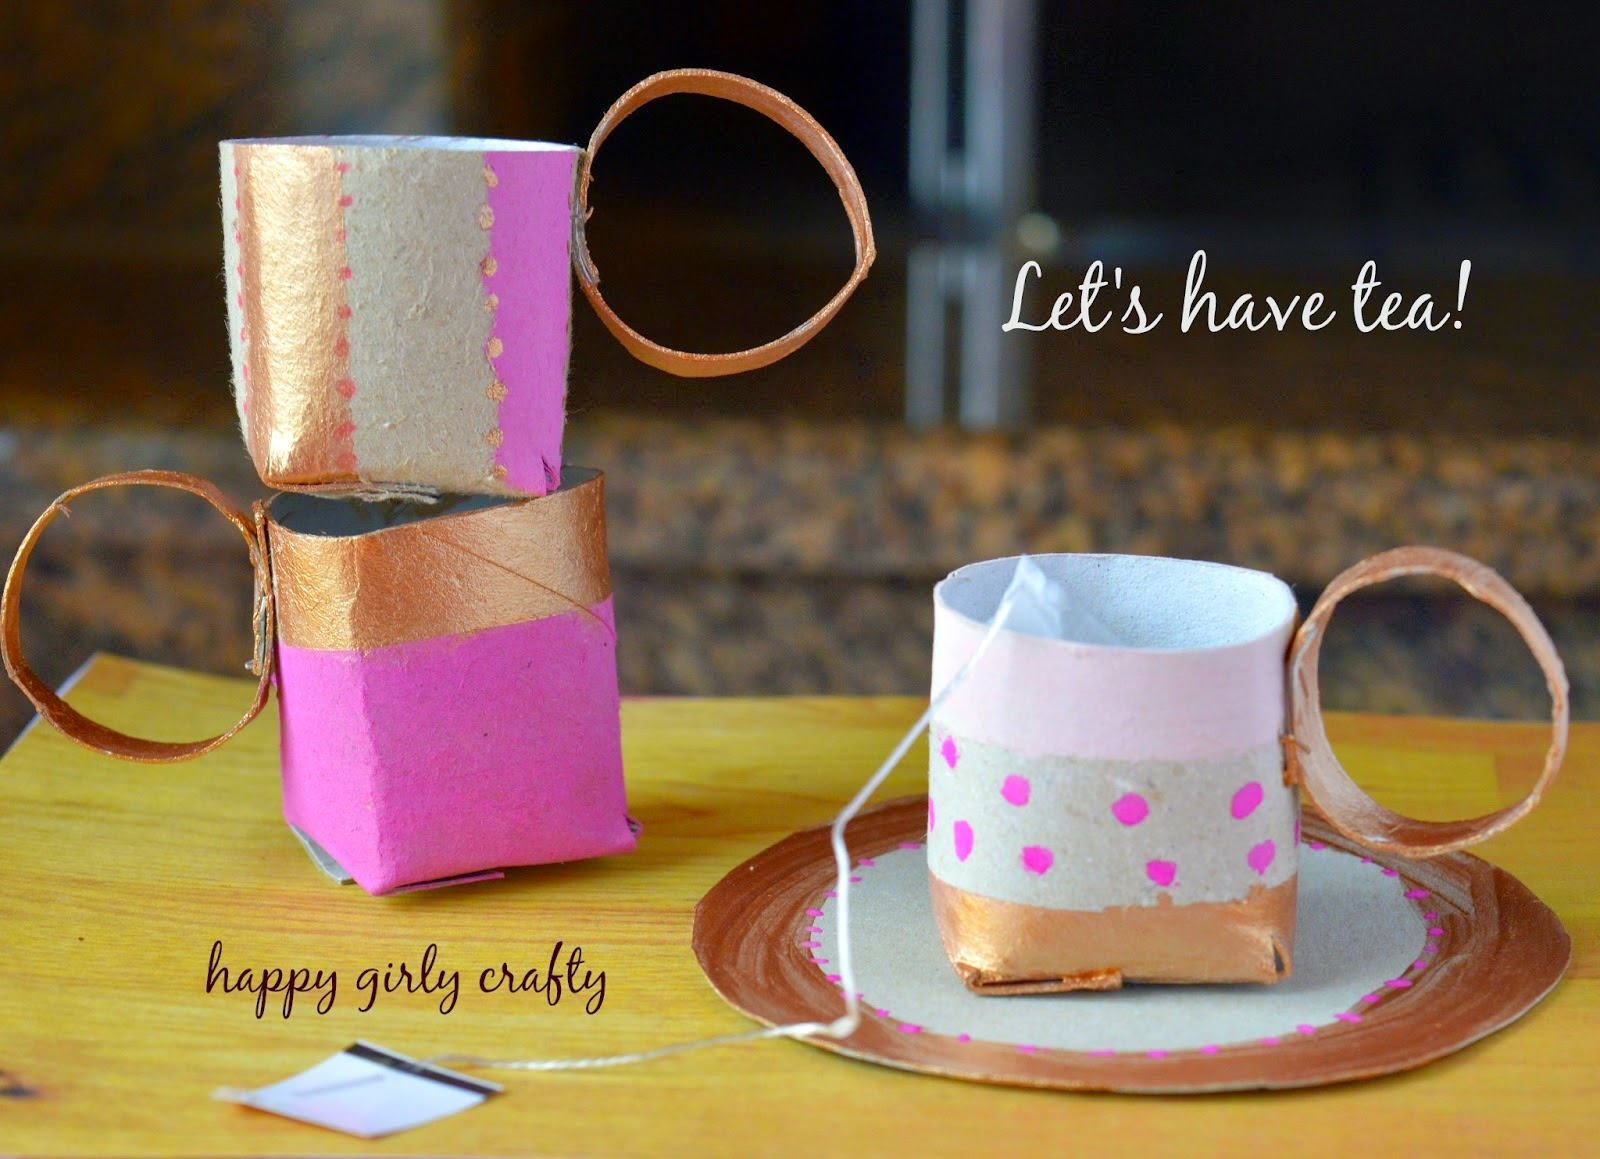 http://happygirlycrafty.blogspot.gr/2015/03/paper-roll-cups-diy.html